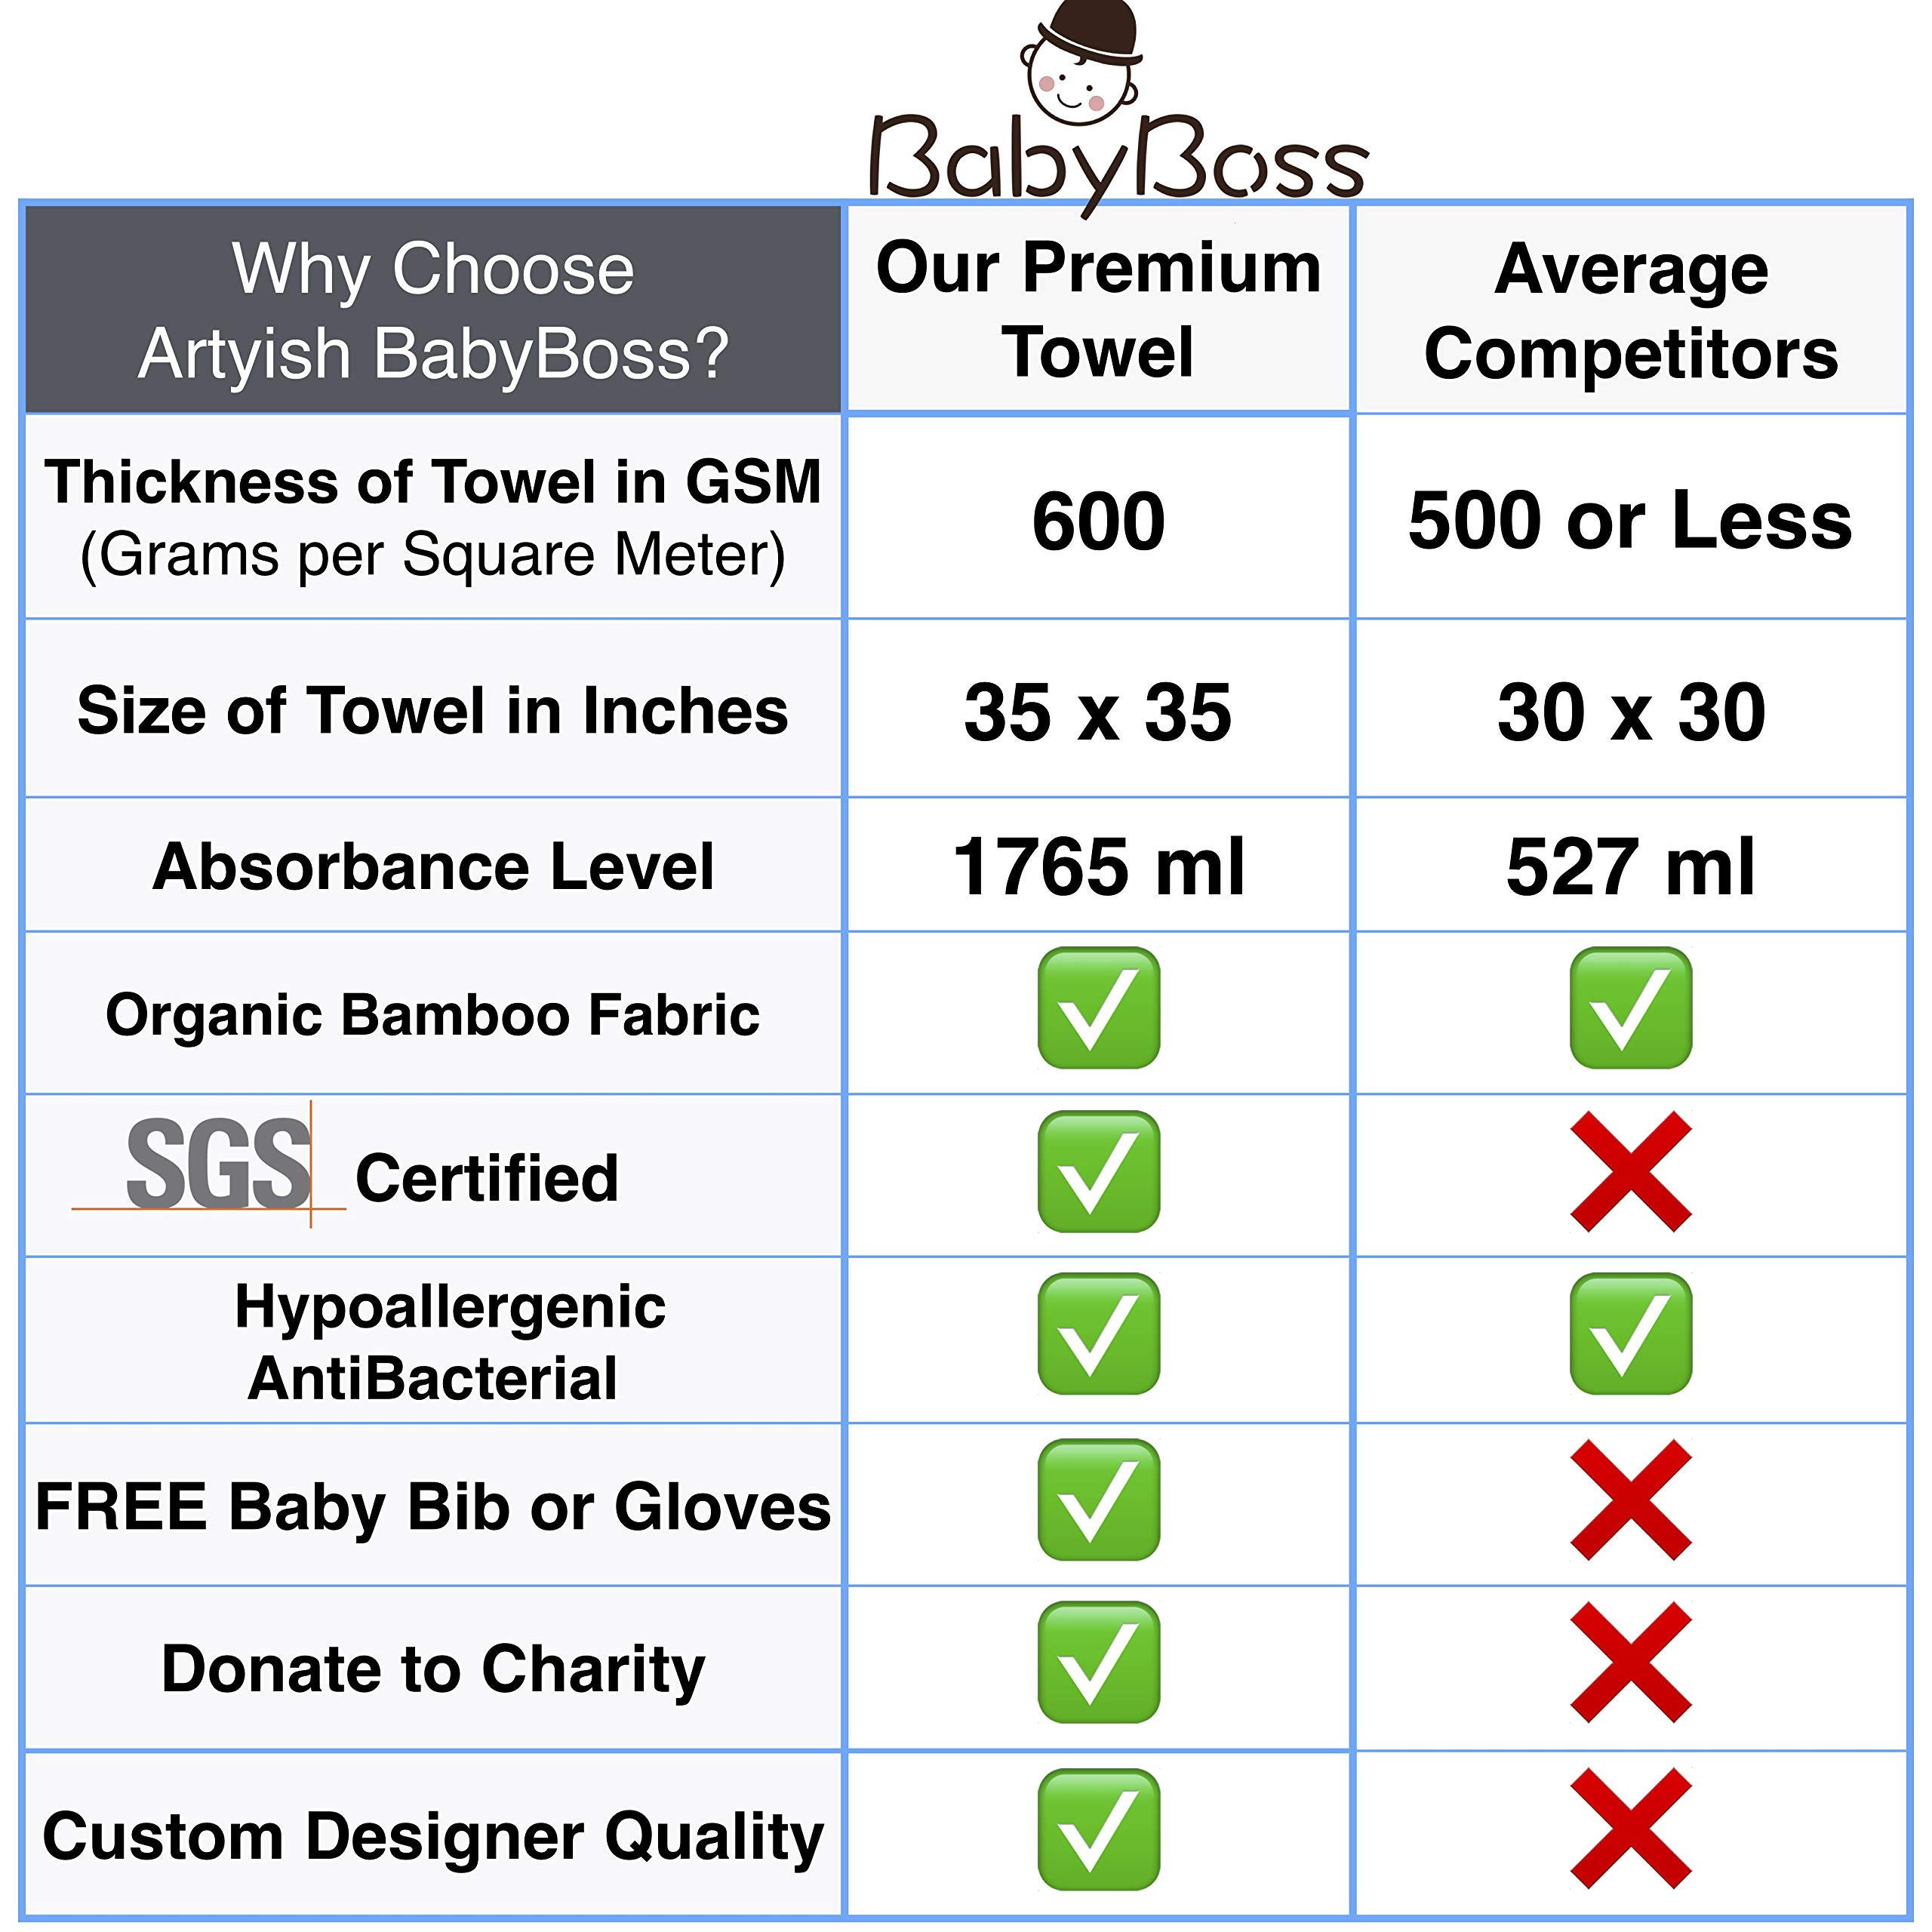 Premium Hooded Baby Towel, 100% Organic Bamboo, Free Baby Bib or Gloves, Baby Shower Gift, 35x35'', Newborns Infants Toddlers, Kids, for Boys and Girls at Bath Pool/Beach, Better Than Cotton (Pink) by Artyish